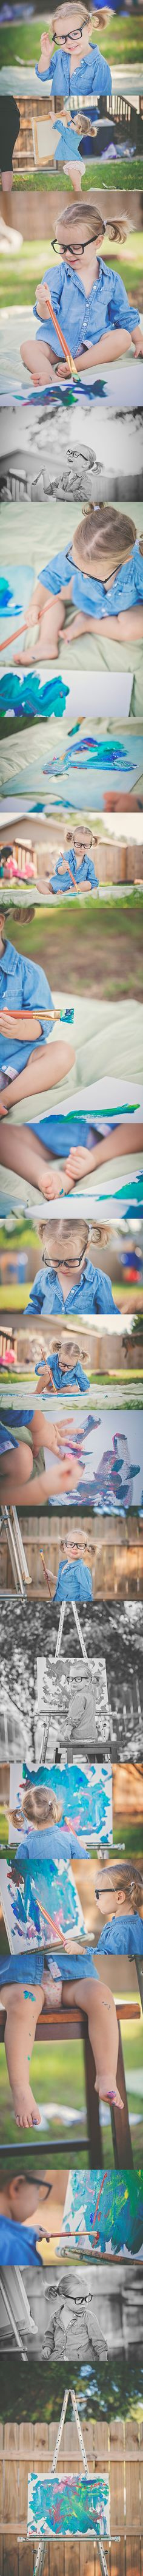 Documentary Inspired | Lifestyle Photography | Real Moments | Raw Emotion | Child Painting Session